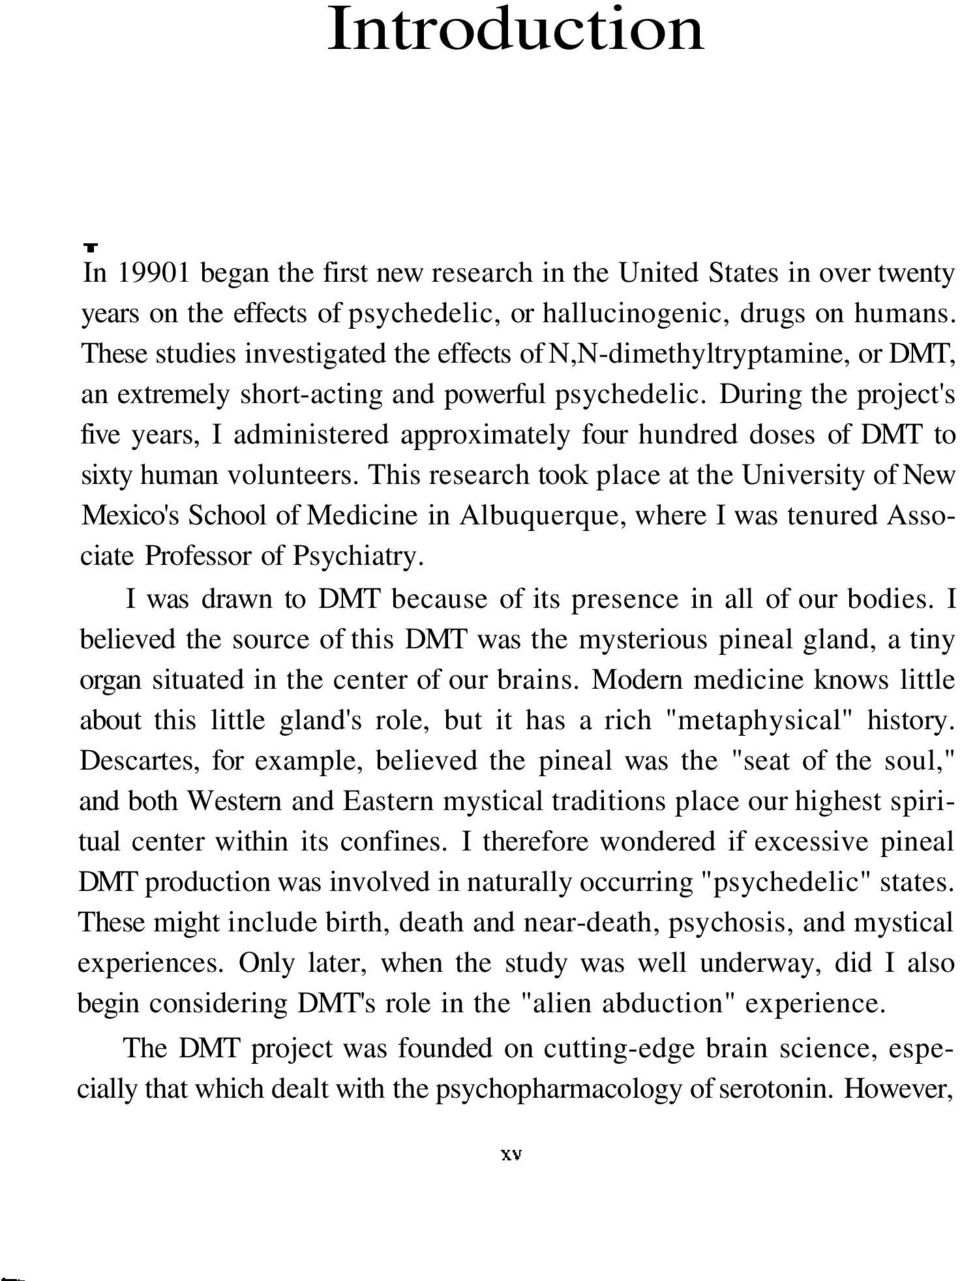 During the project's five years, I administered approximately four hundred doses of DMT to sixty human volunteers.